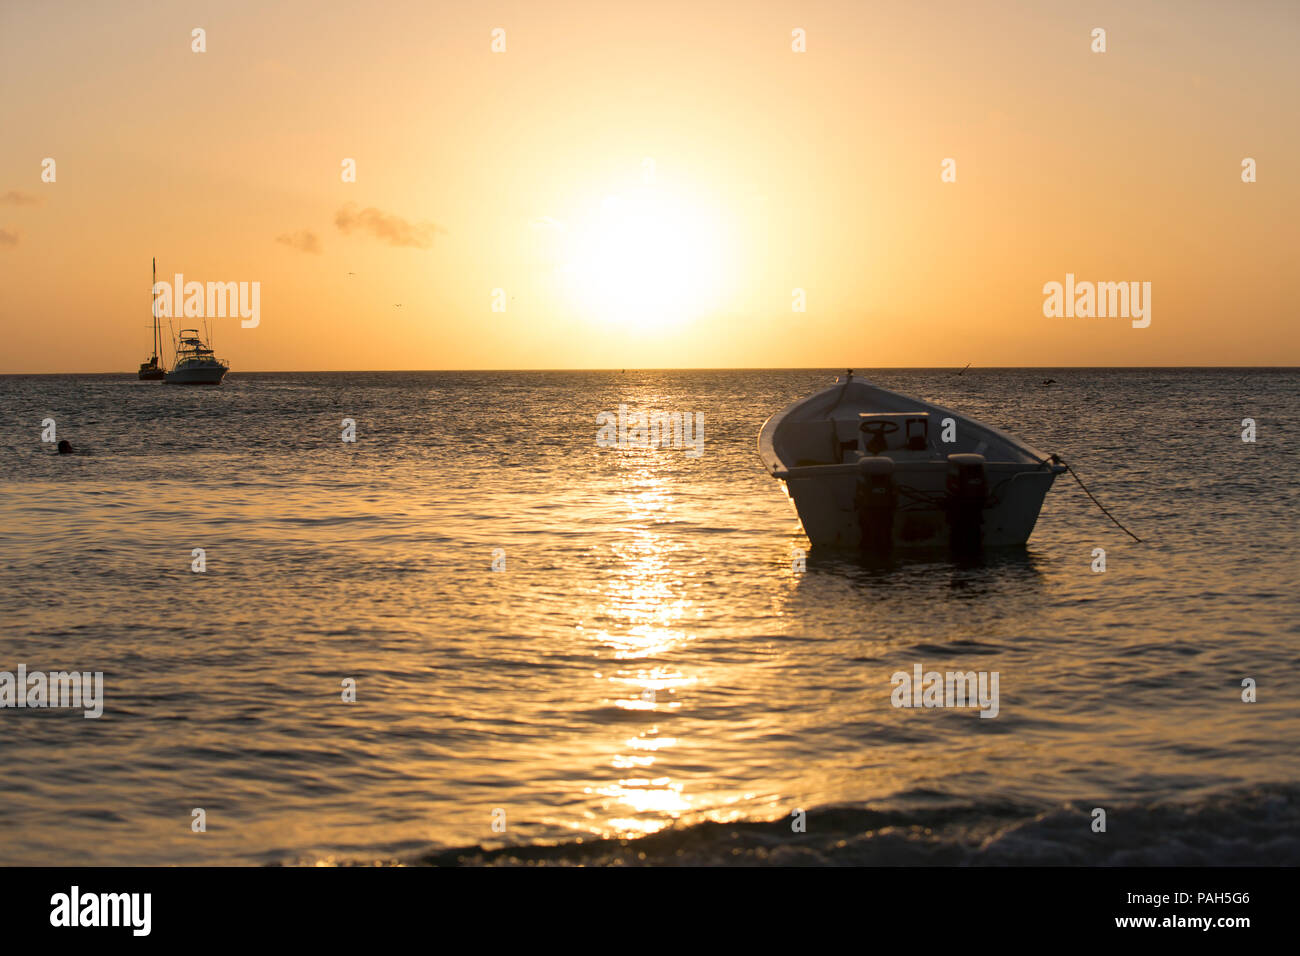 Boats in the sunset, Los Roques Islands, Venezuela - Stock Image